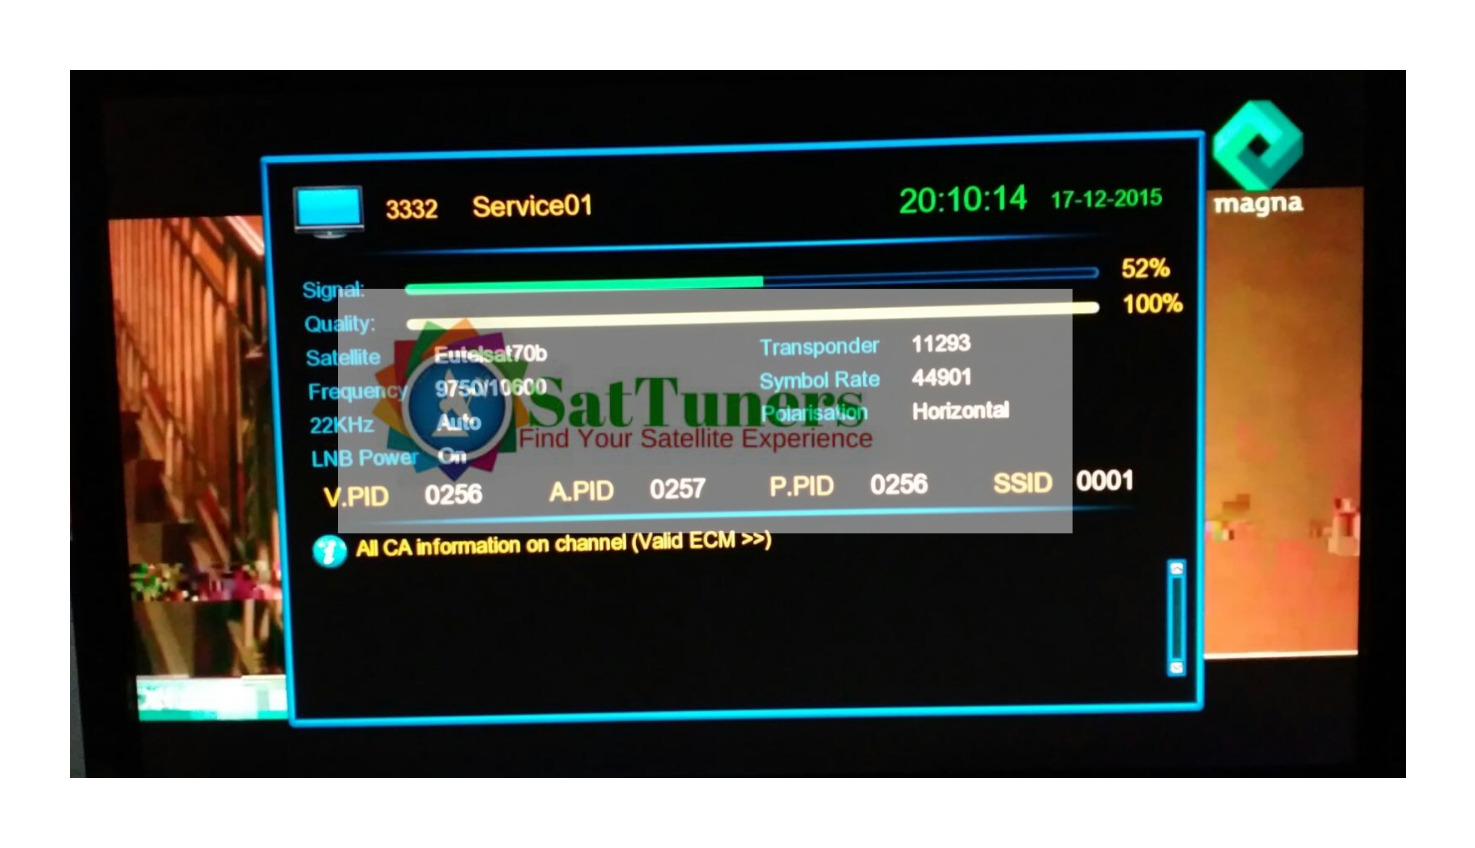 New Malayalam Channel Magna Tv Test Signal Started In Eutelsat 70b